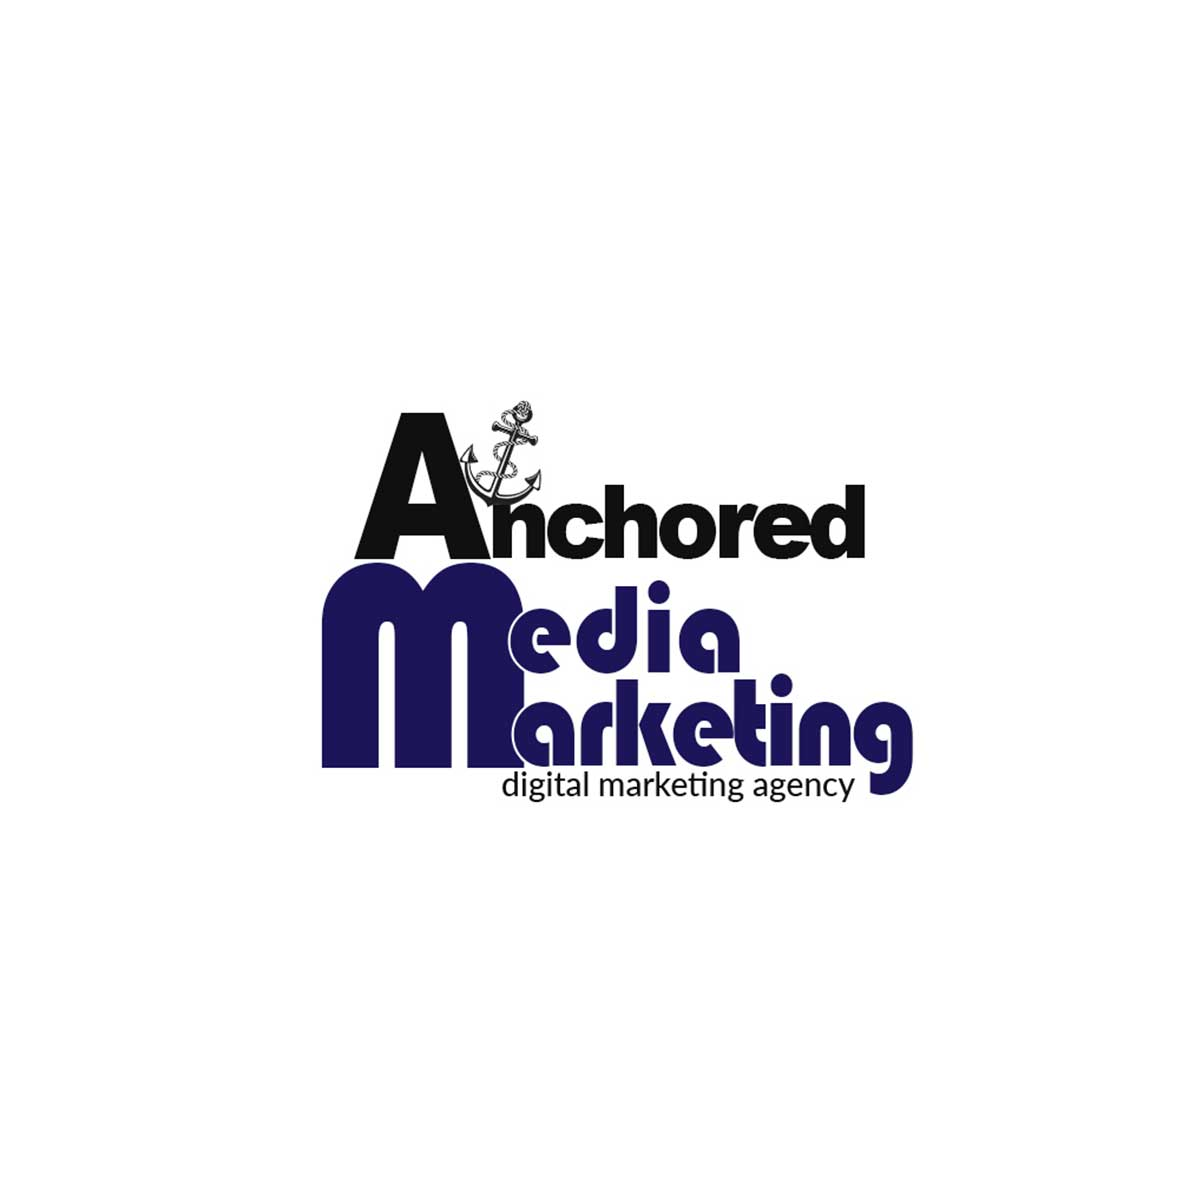 Anchored Media Marketing SEO and Online Marketing